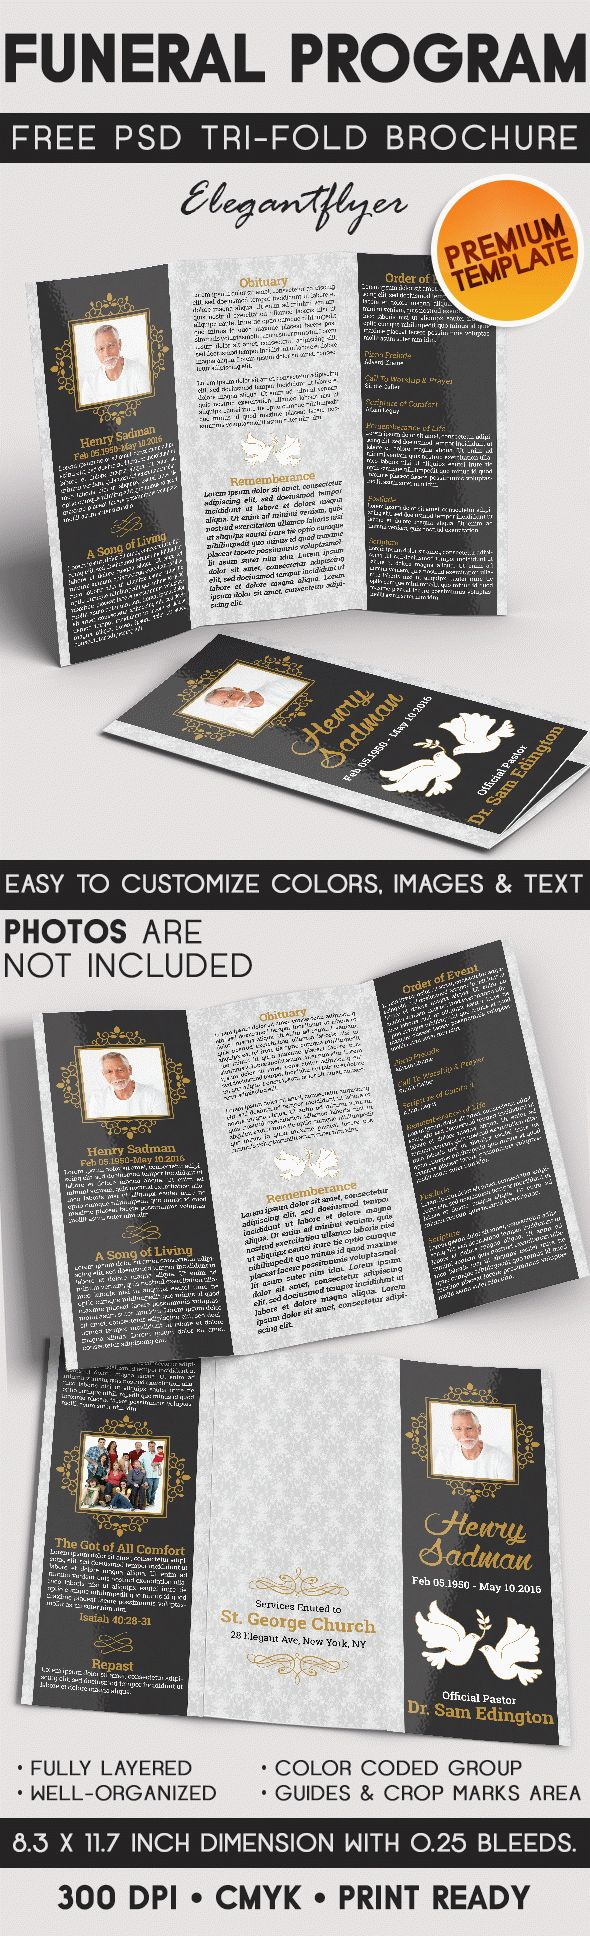 Tri fold brochure for funeral program by elegantflyer for Funeral brochure templates free